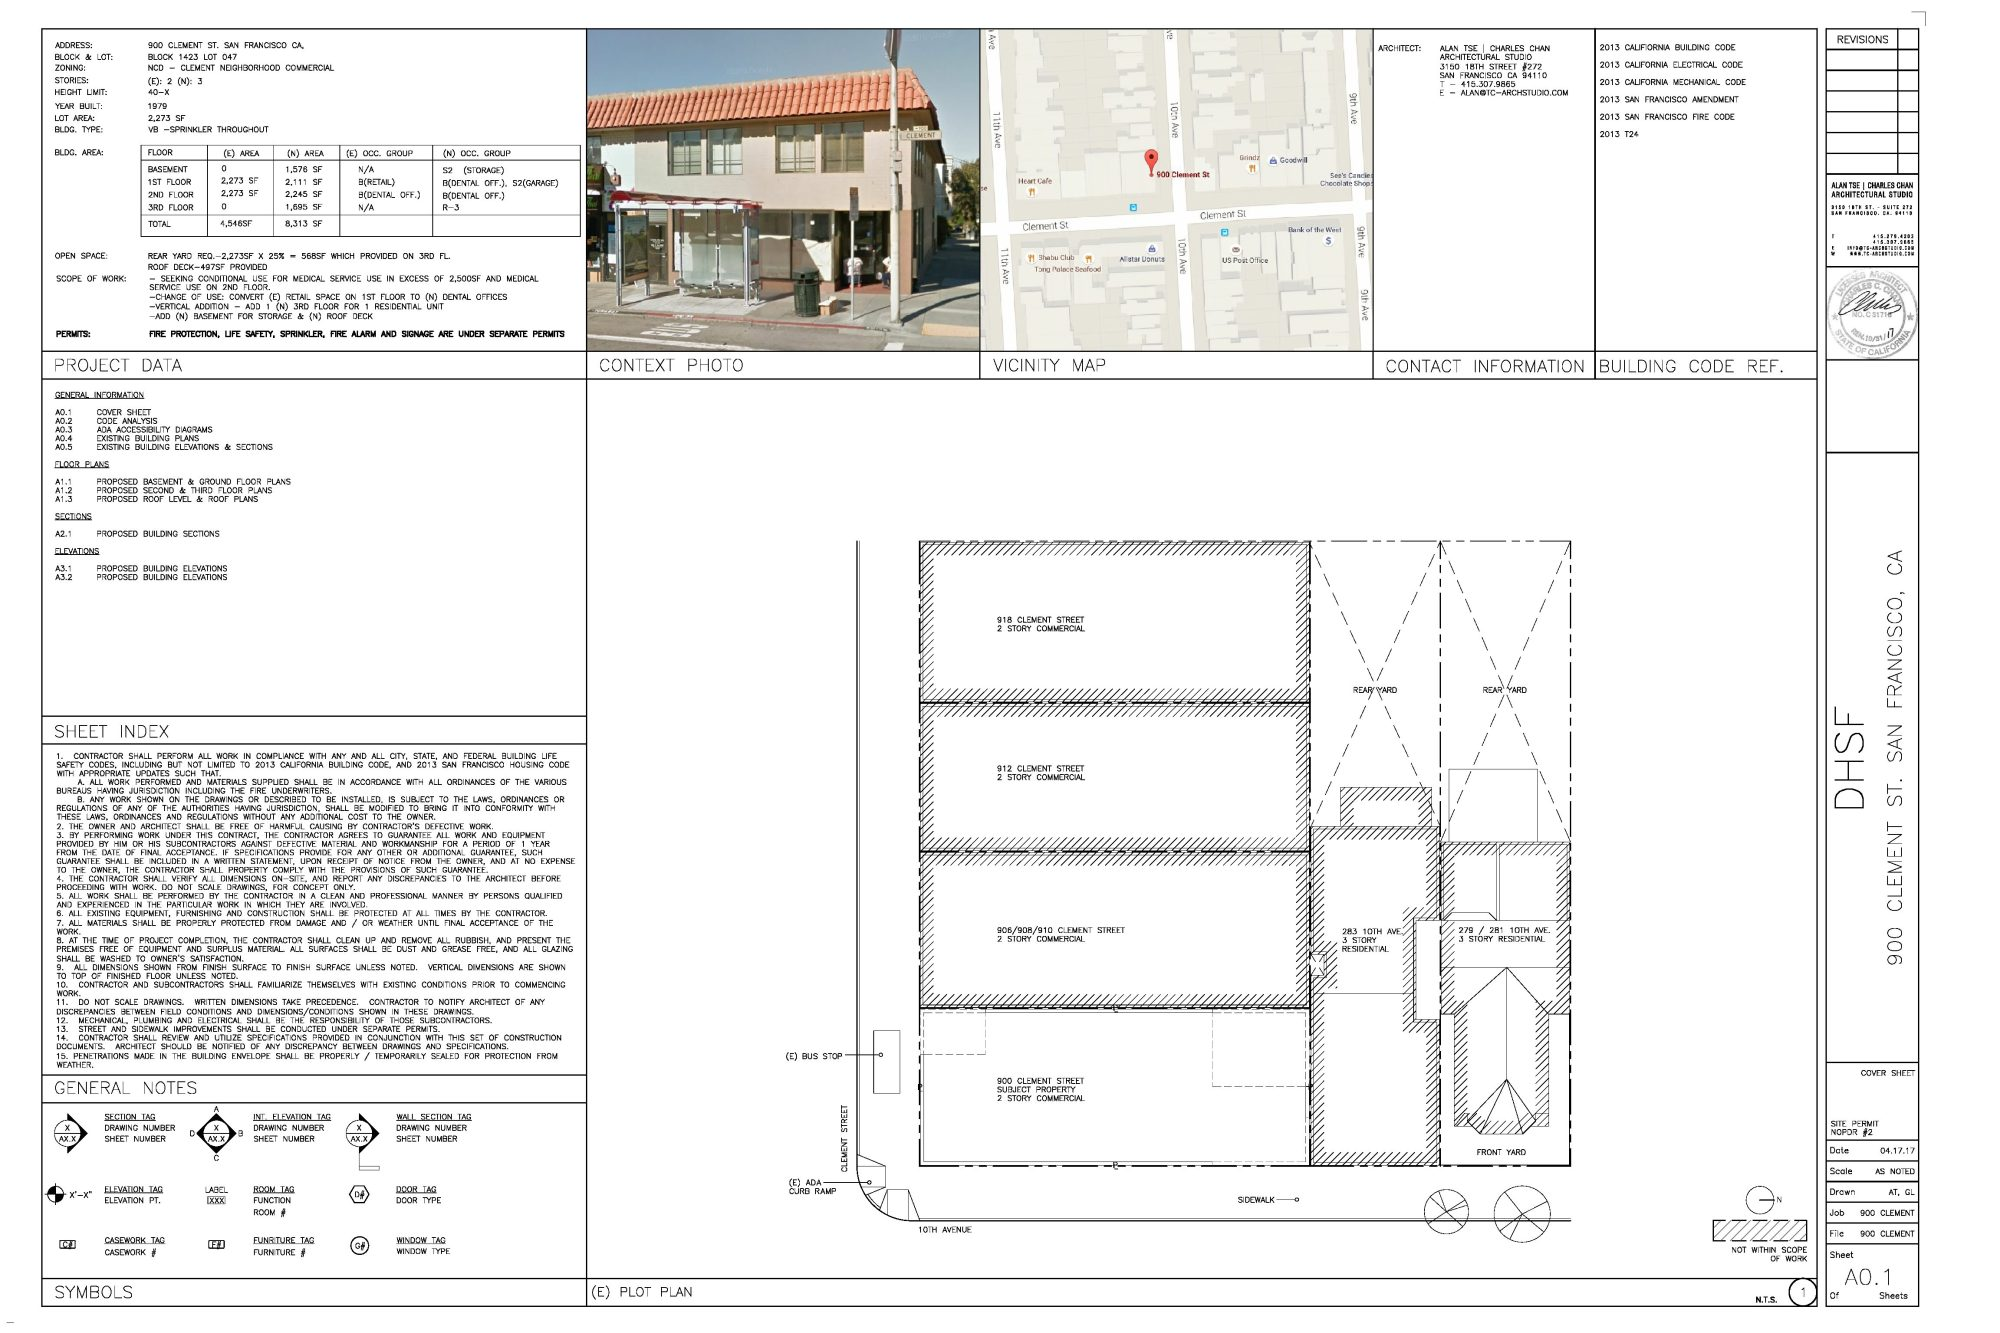 hight resolution of  plans 900 clement street 2016 004524cua pdf jpg